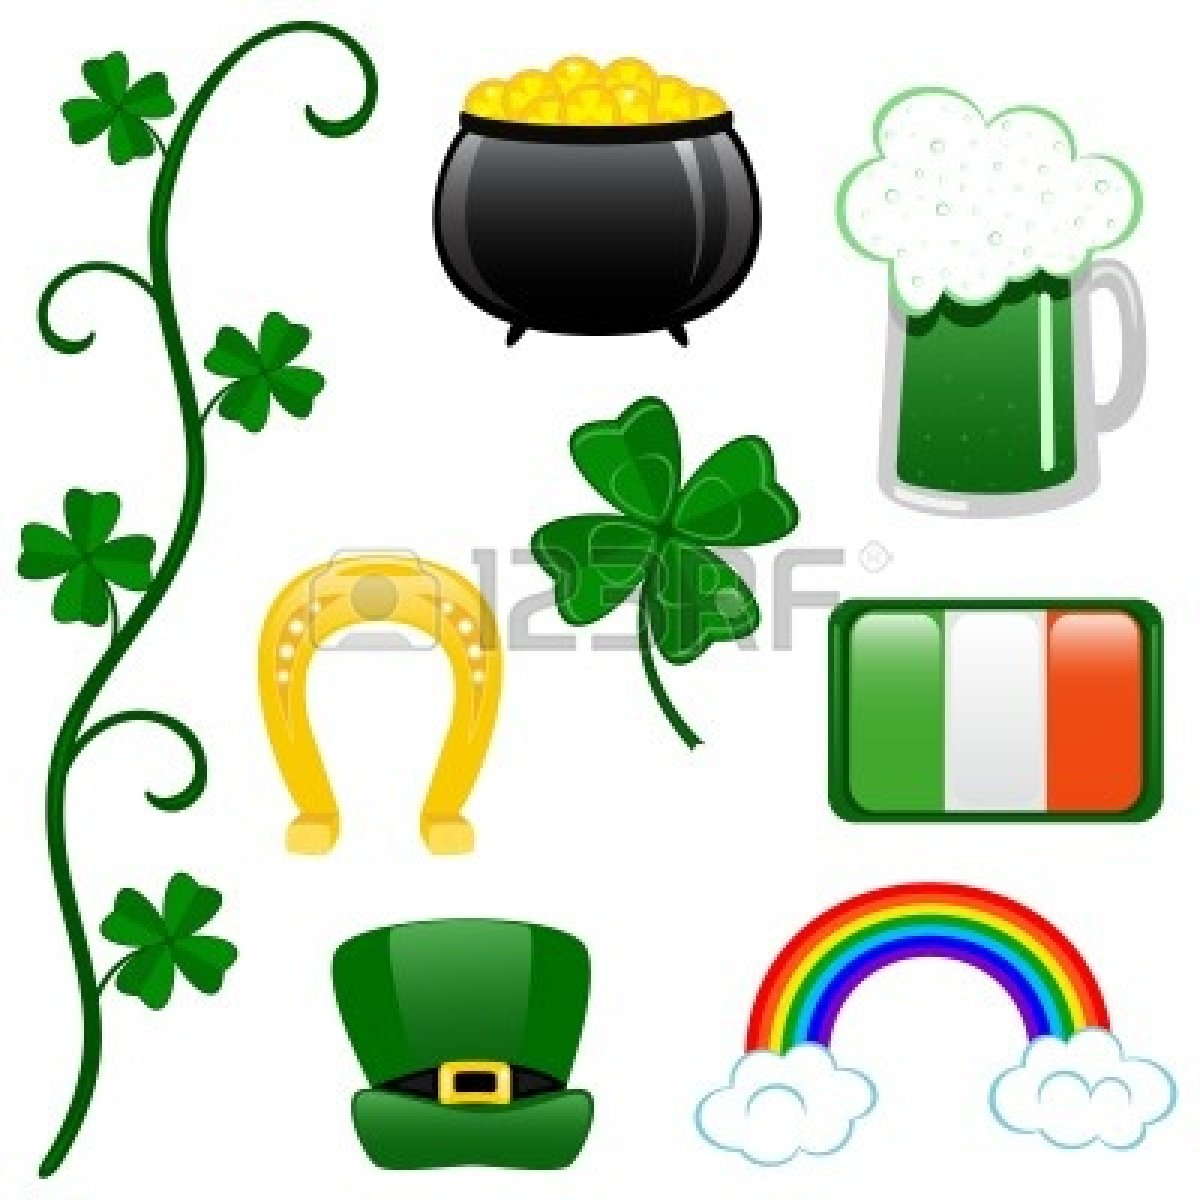 preview clipart earnings clipart 4485615 st patricks day clip art.